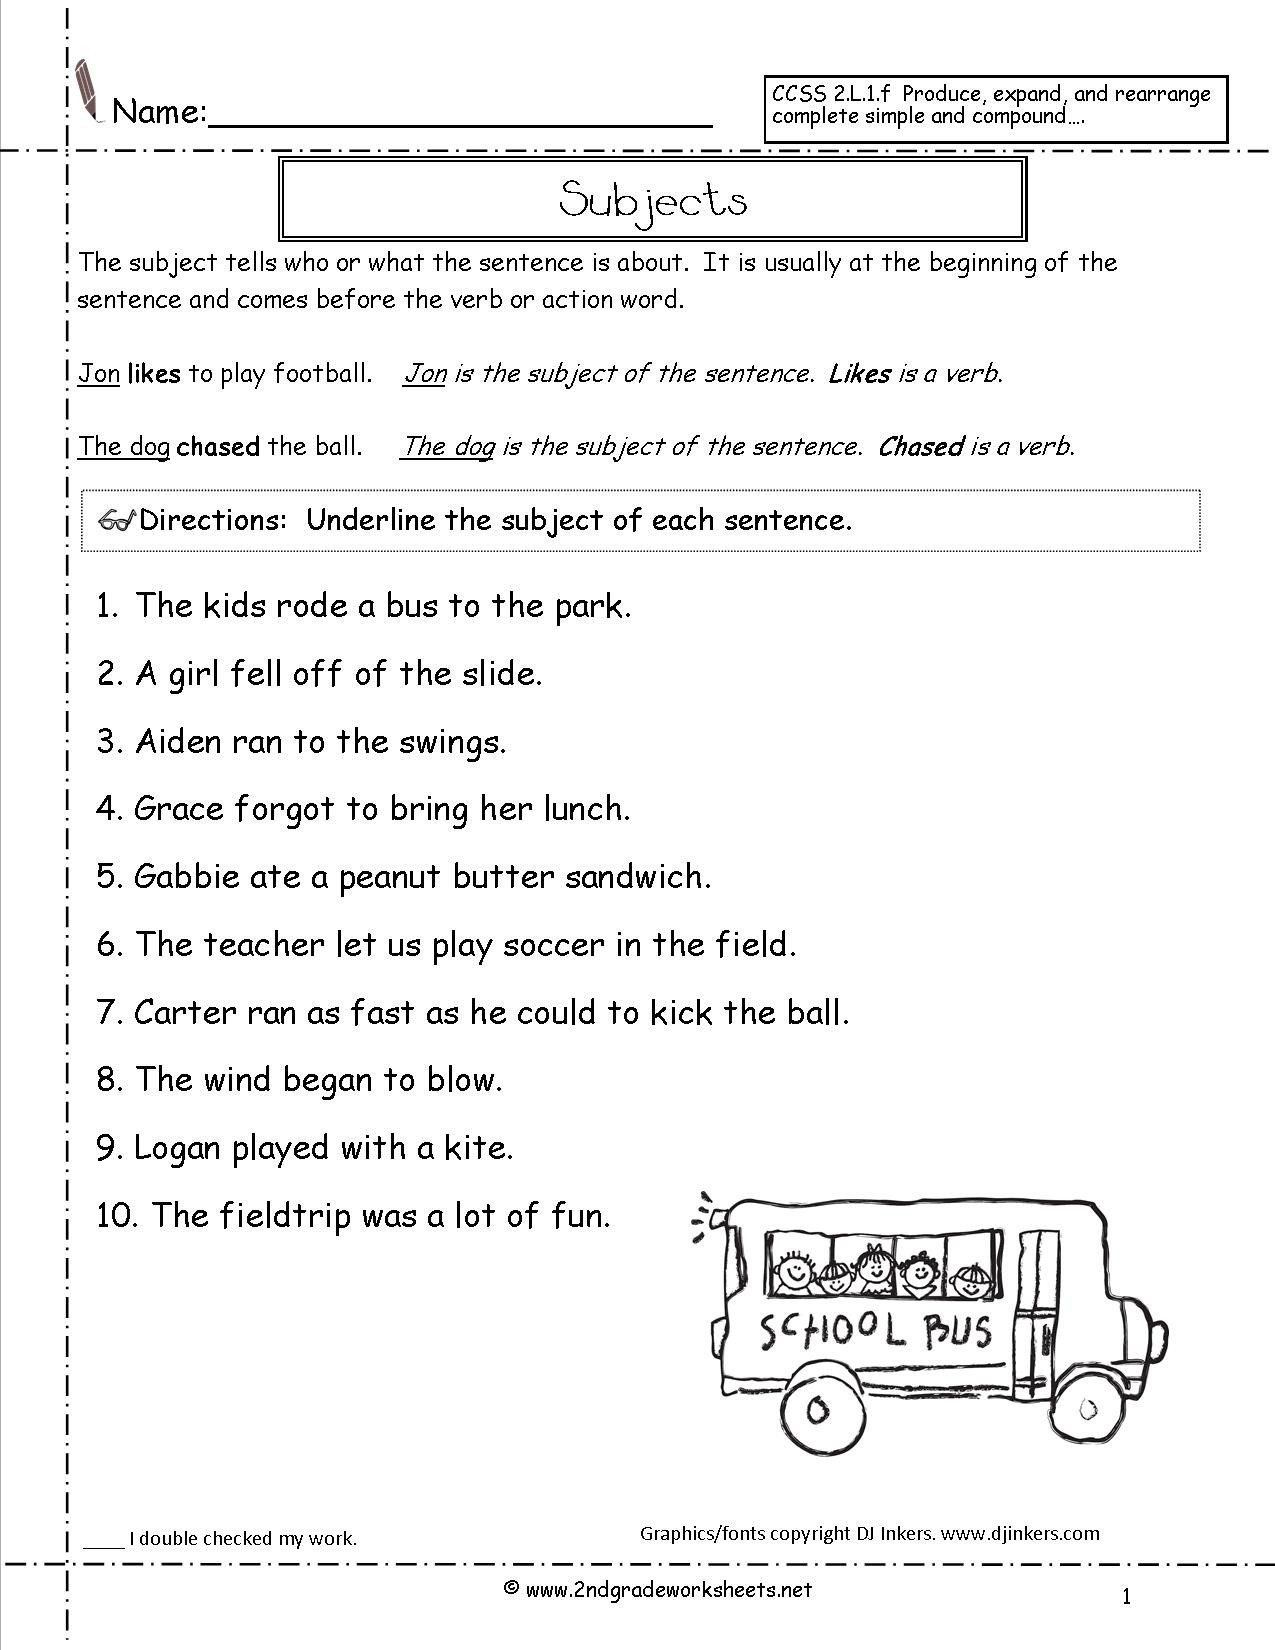 small resolution of Subject Sentence Worksheets   Printable Worksheets and Activities for  Teachers